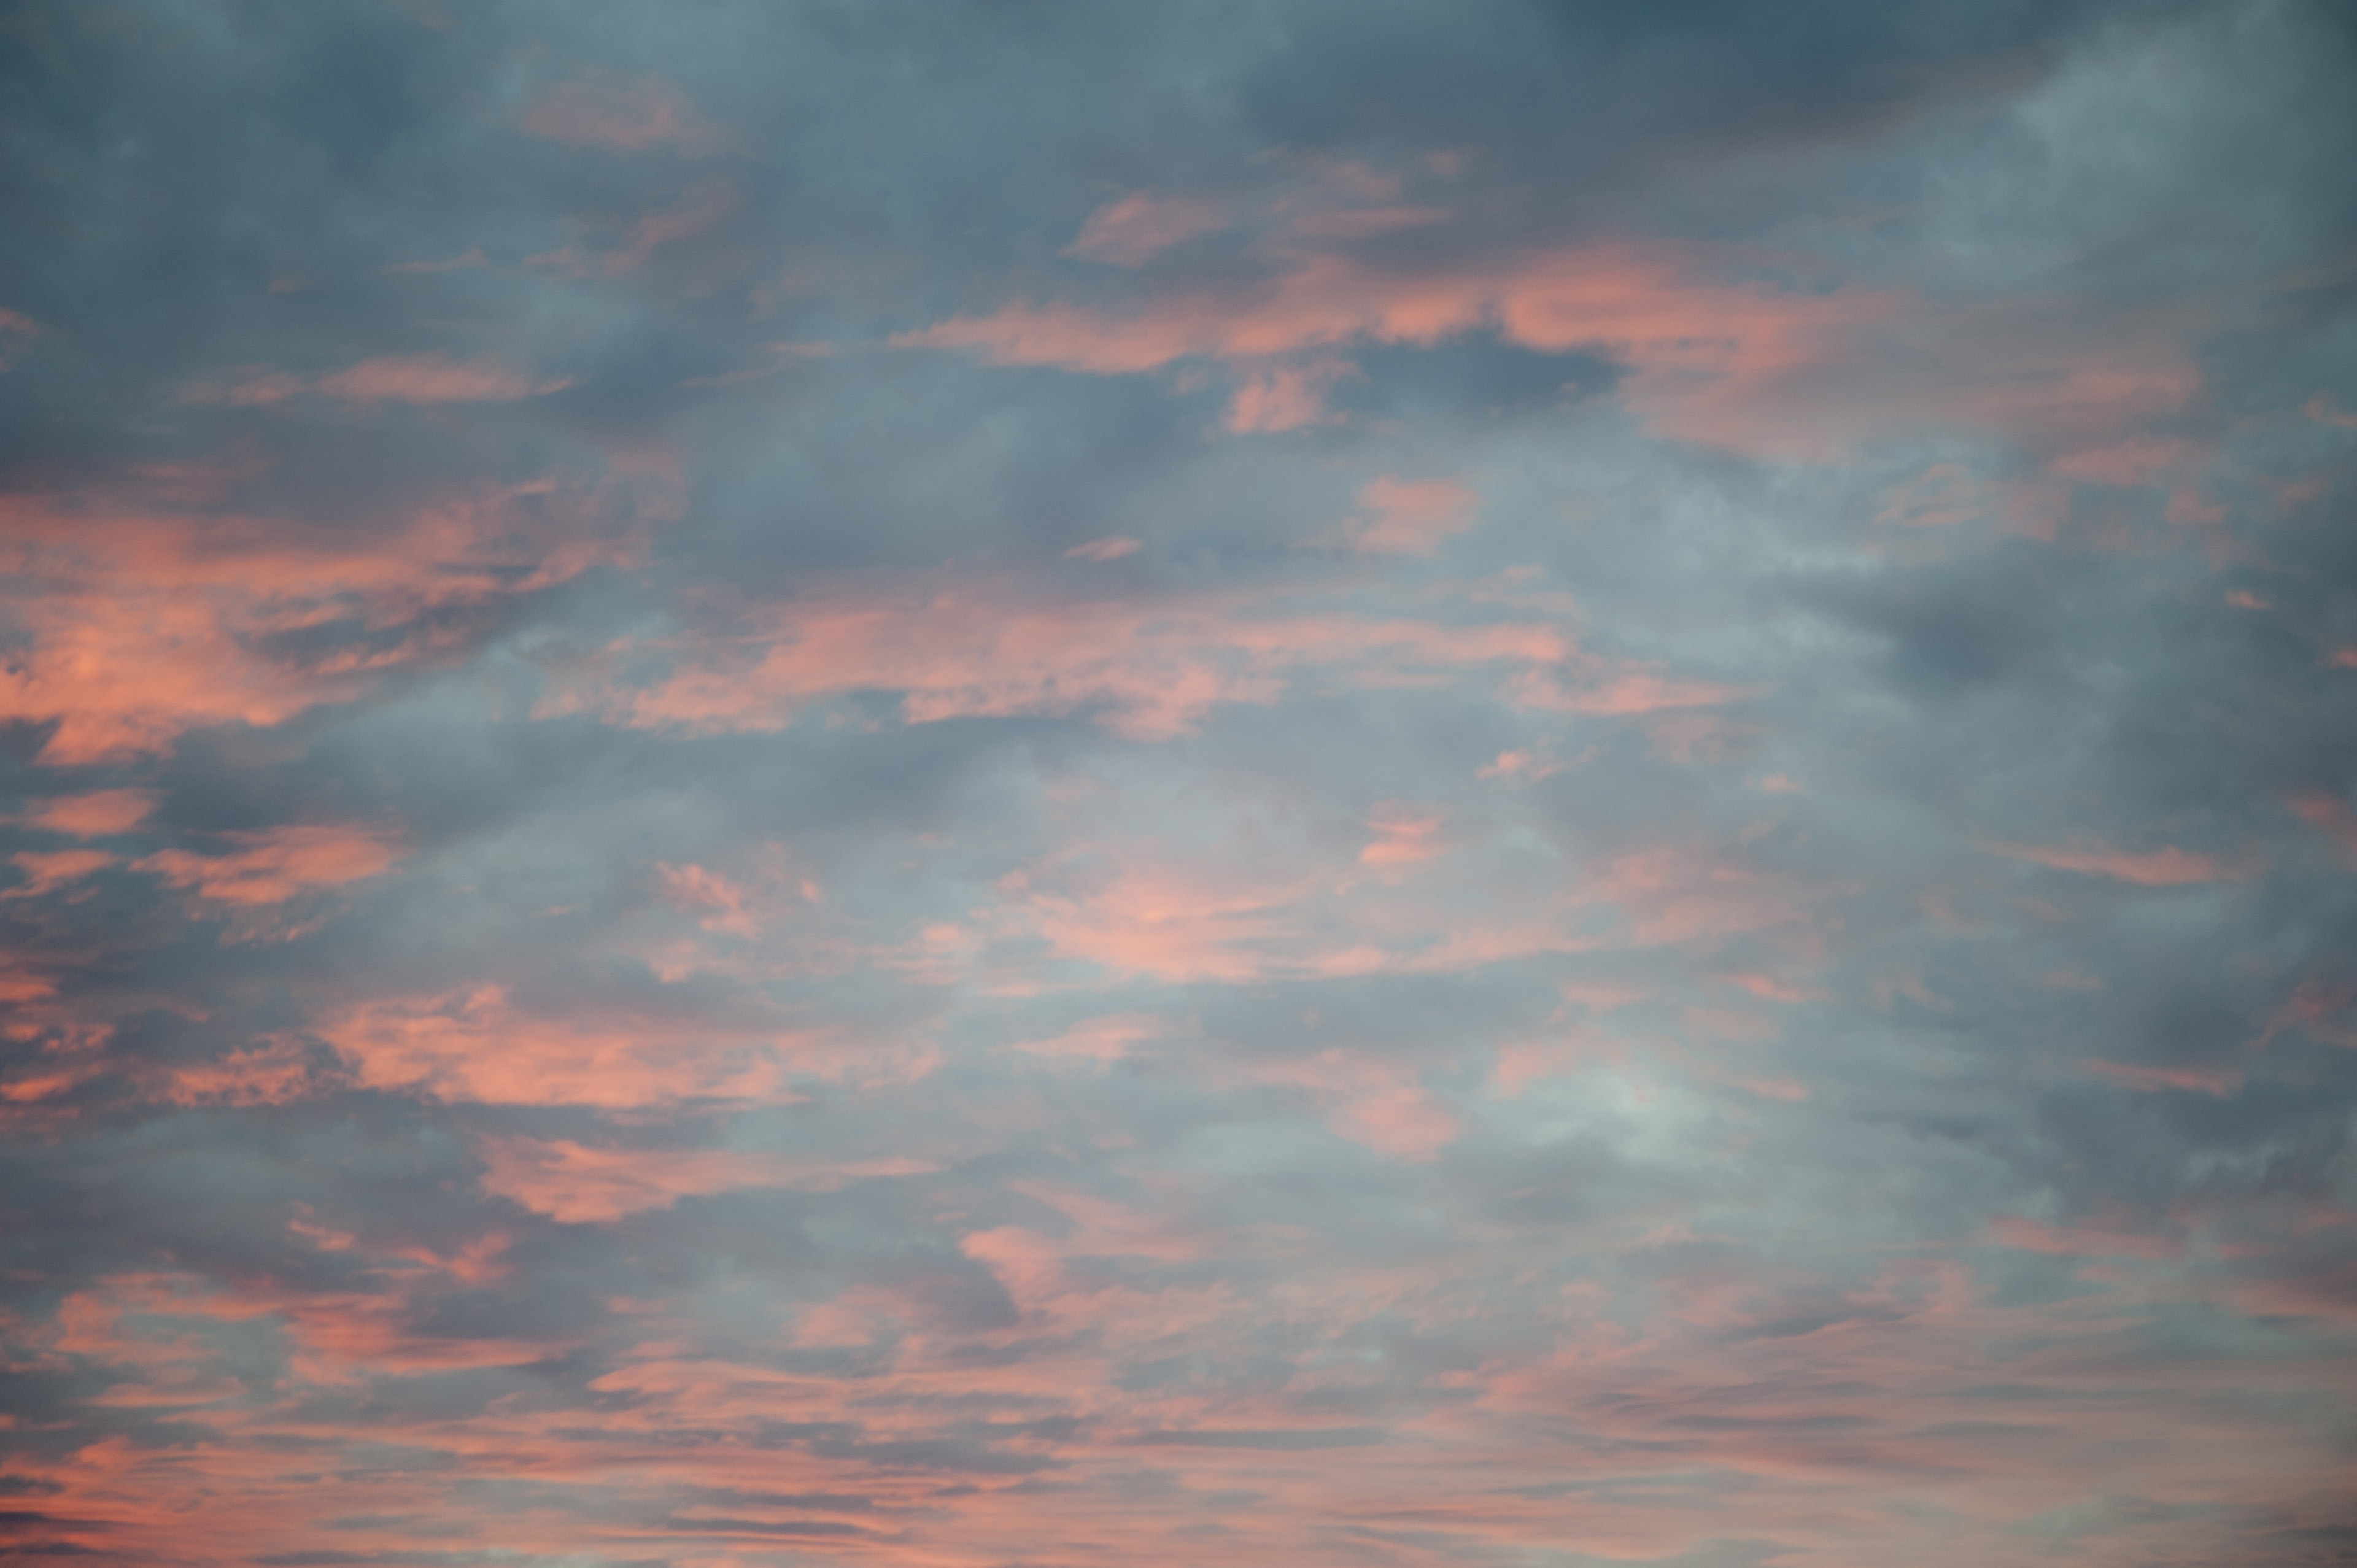 Delicate pink sunset reflected on scattered fluffy clouds in a soft blue sky for an atmospheric nature and weather background panorama